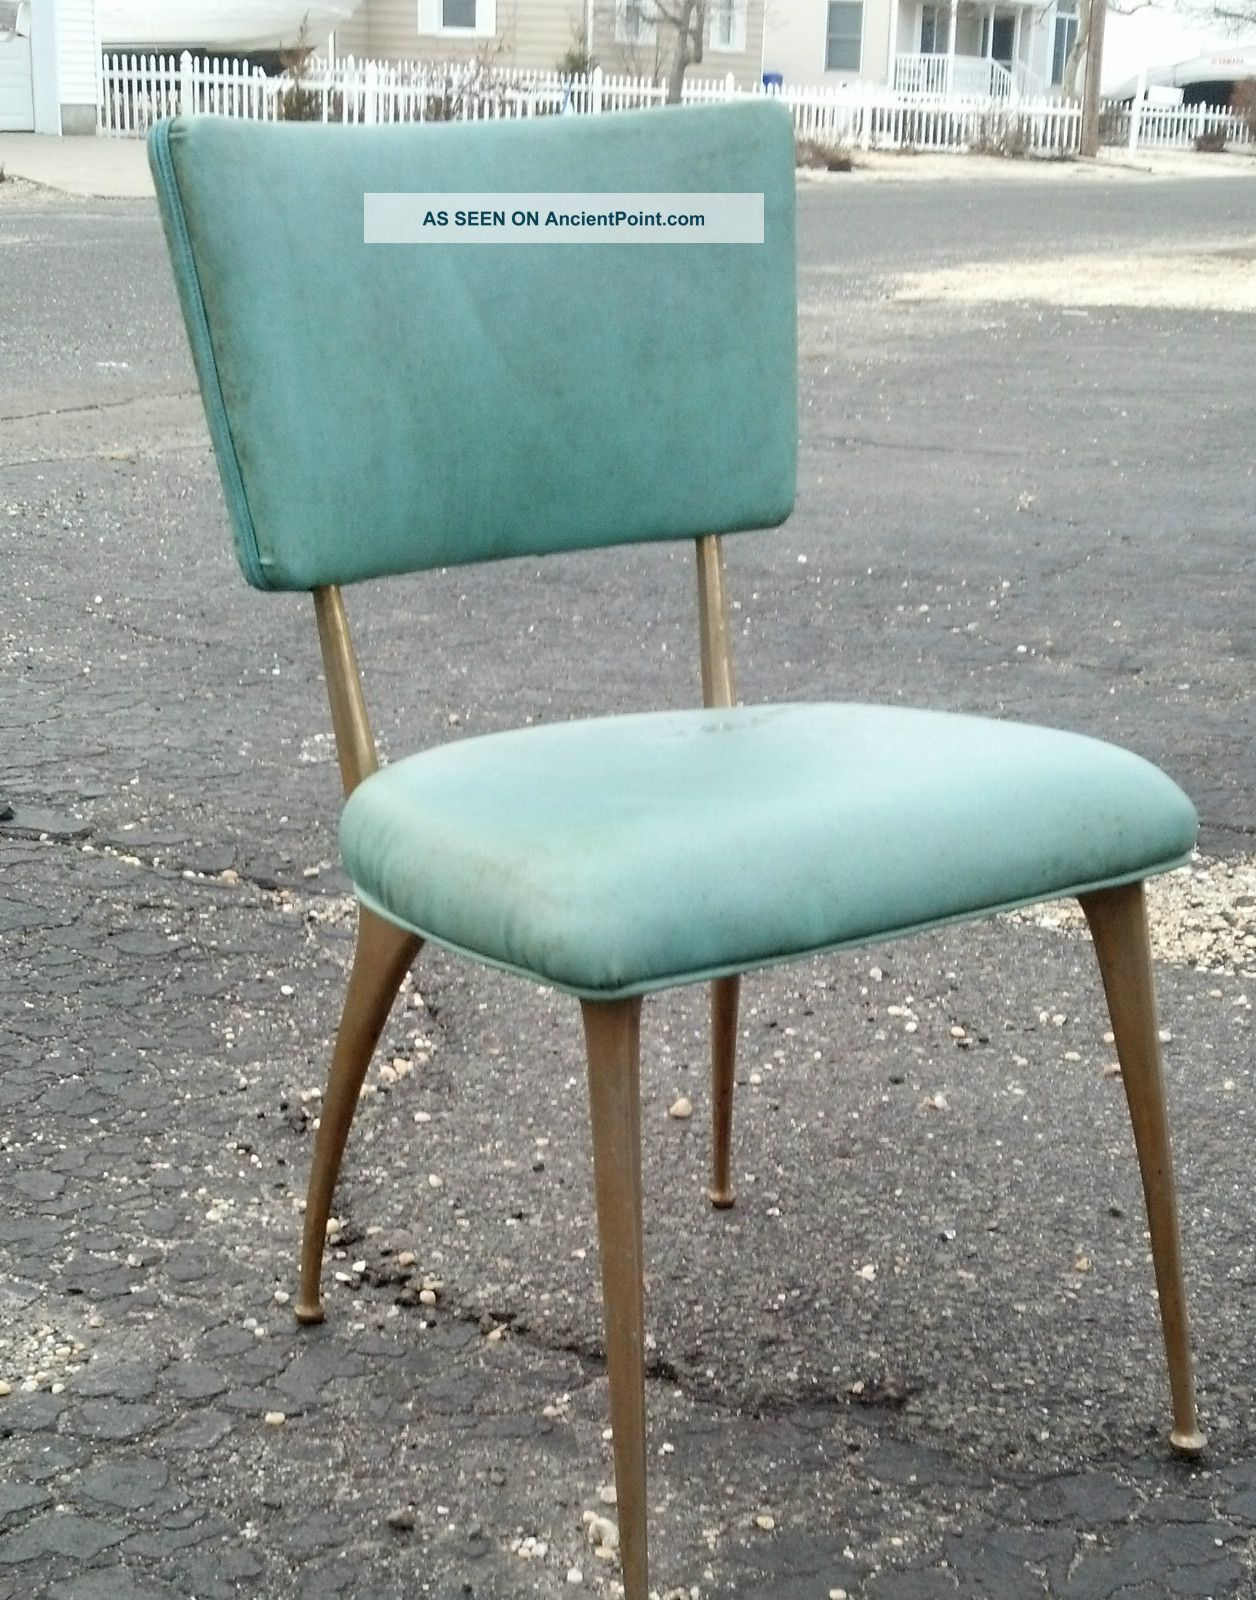 kitchen chair Set Of 4 Mid Century Eames Era Aqua Brass Legs Kitchen Chairs Dirty Not Damaged